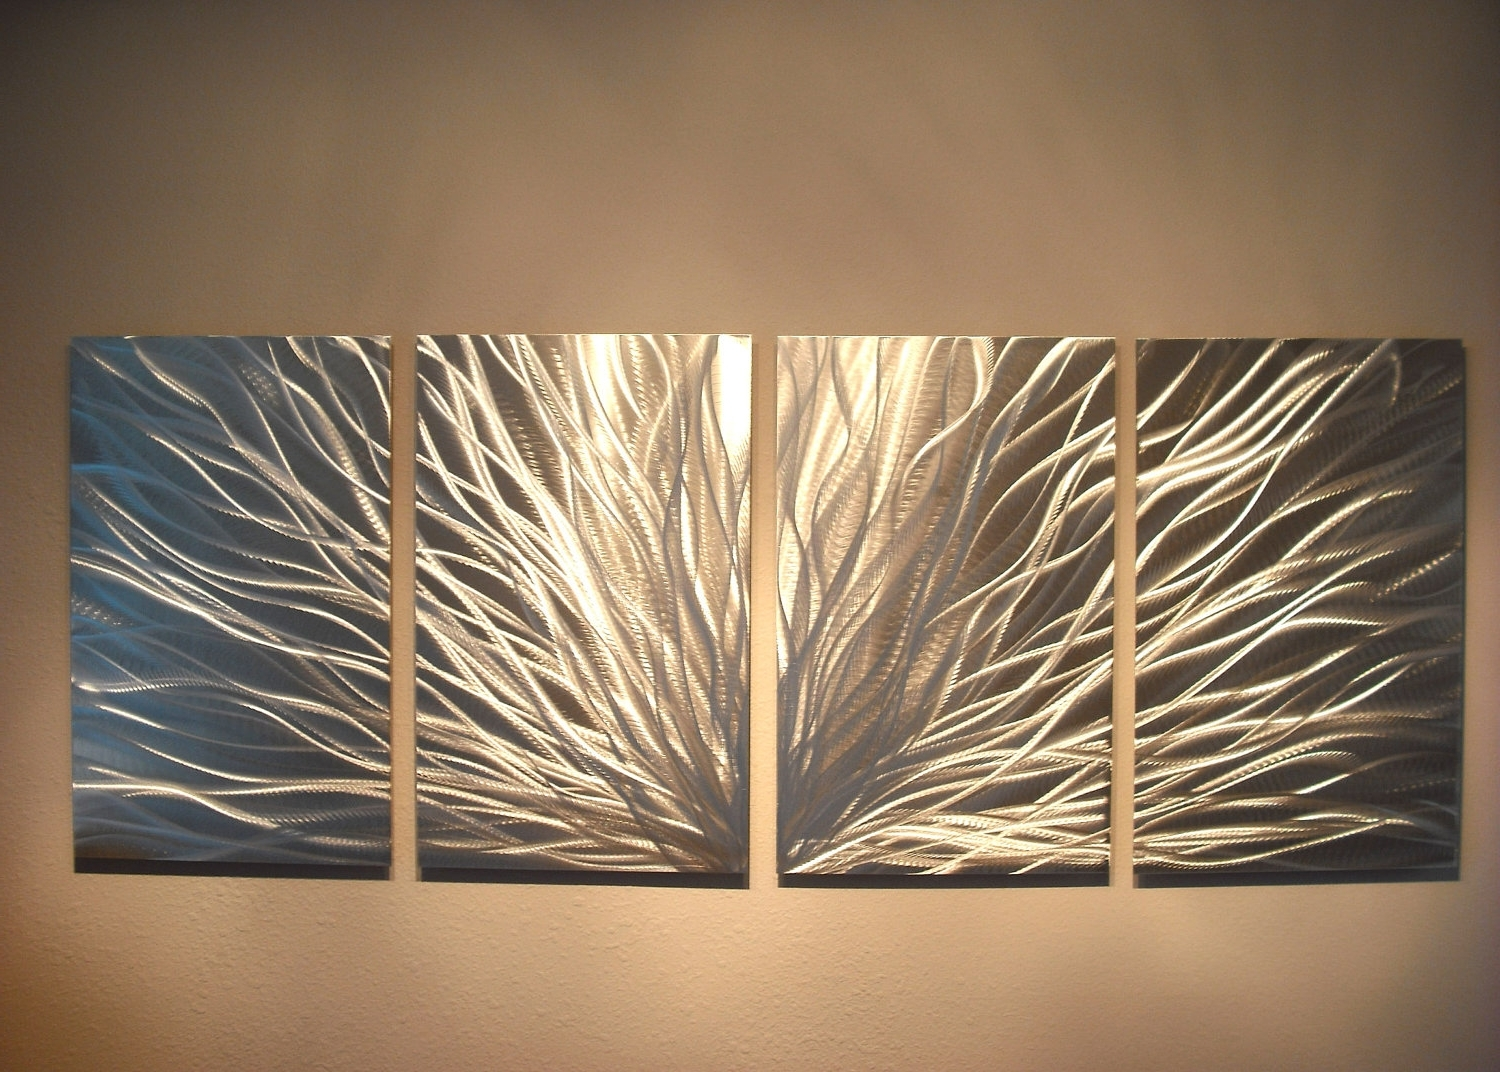 Radiance – Abstract Metal Wall Art Contemporary Modern Decor On Storenvy Inside Most Current Modern Wall Art (View 5 of 15)